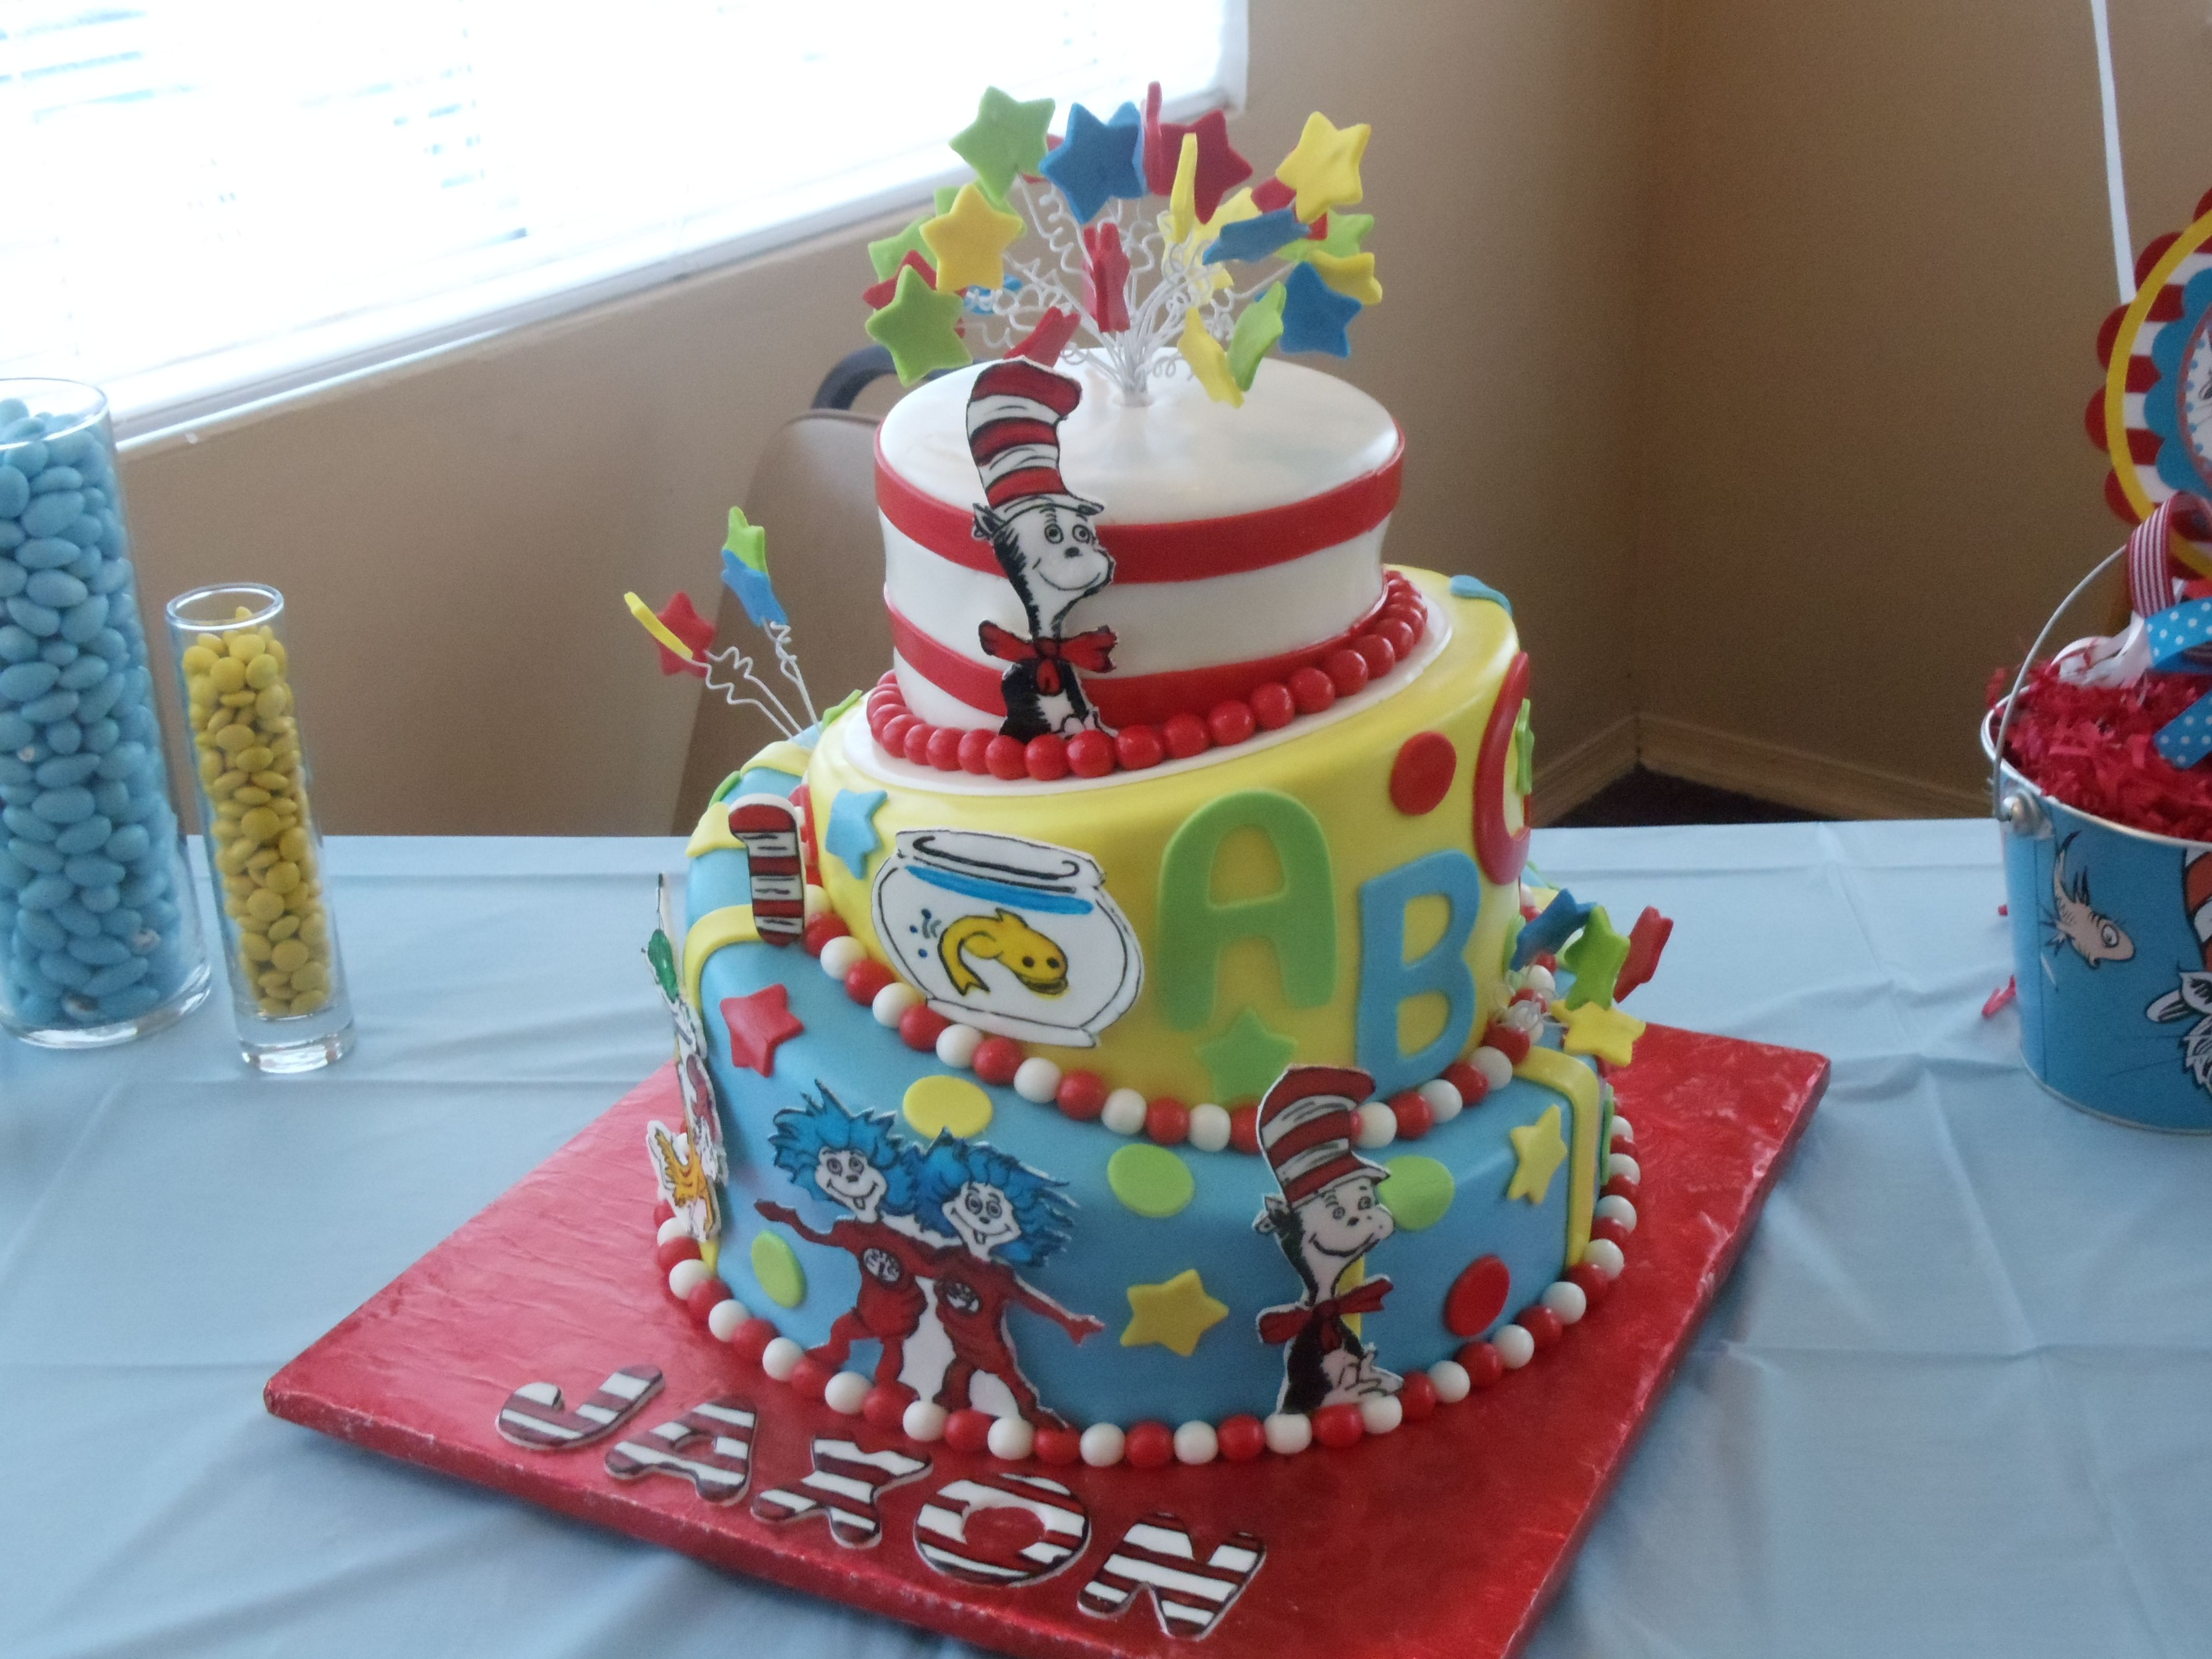 My Son S First Birthday Cake Dr Seuss Dr Suess Birthday Party Ideas Dr Seuss Cake Dr Seuss Birthday Party